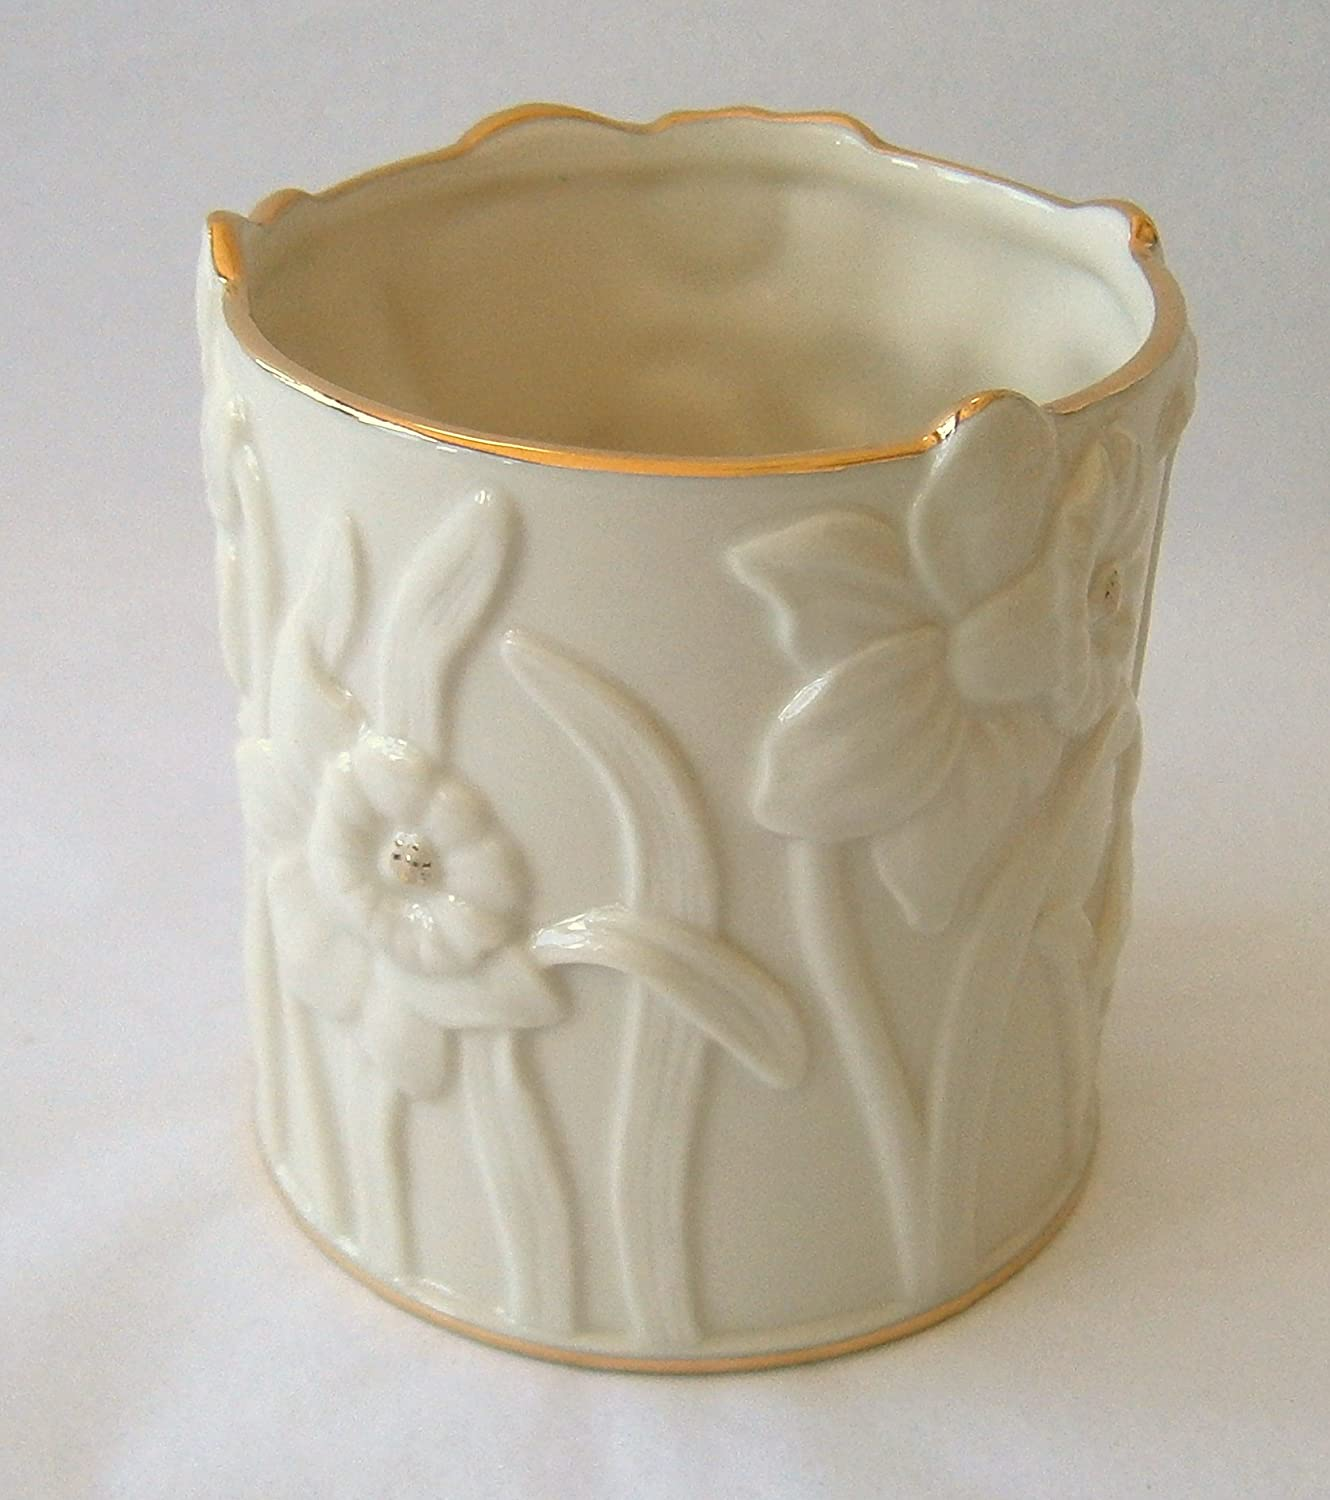 Daffodil Design Votive Holder Ivory Color with Gold Trim Tea Candle Included # 827884 Lenox